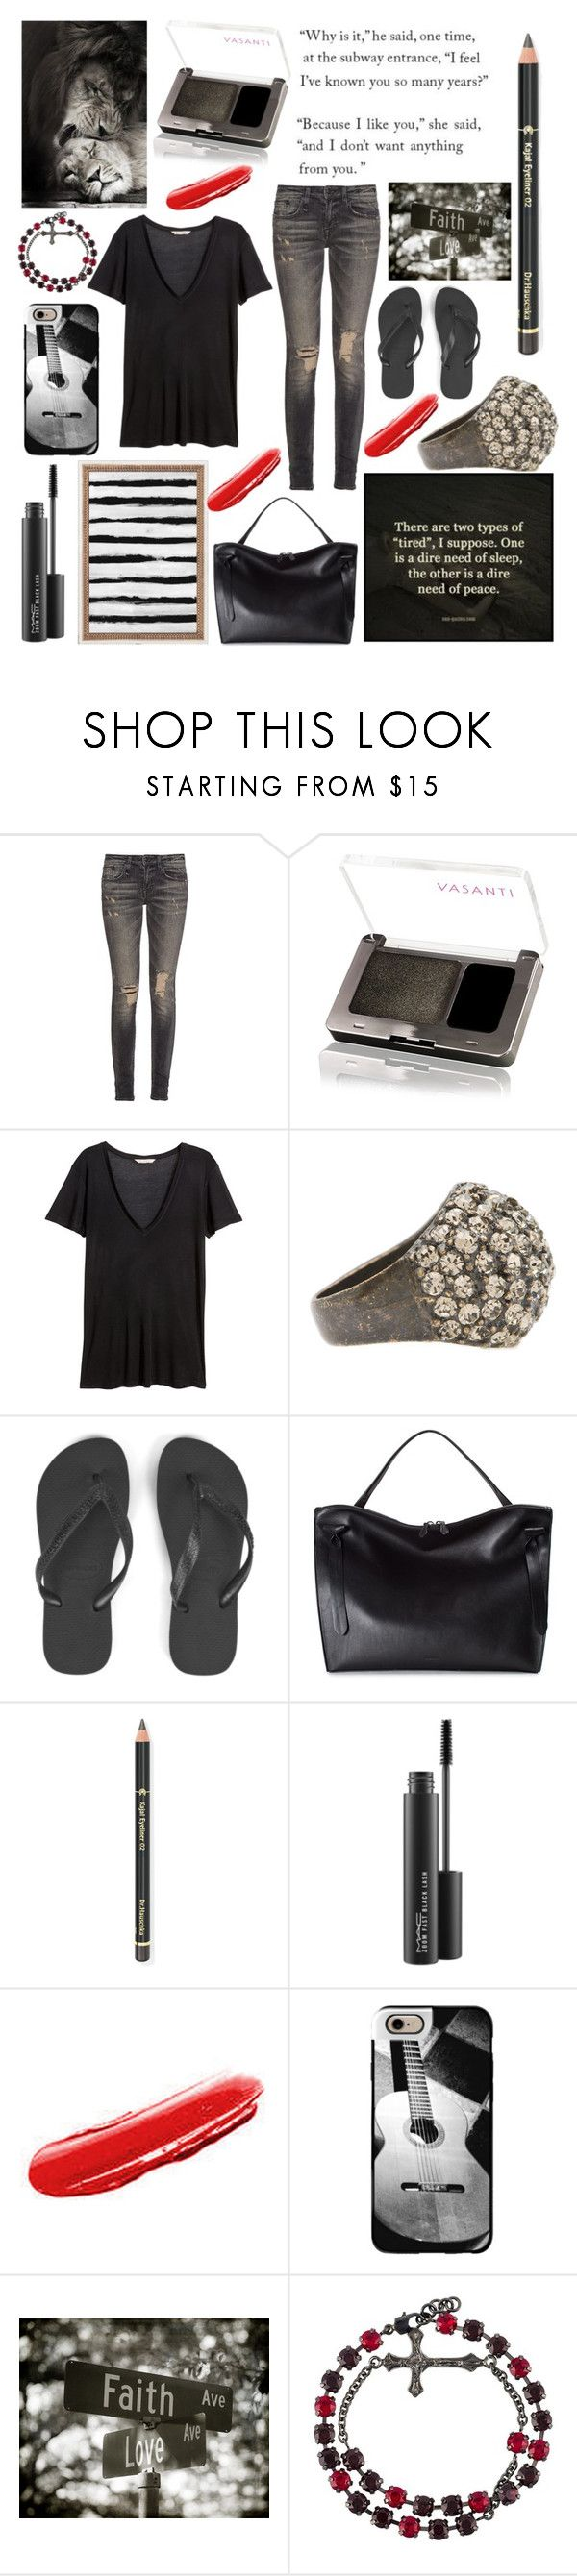 """""""The corner of Faith and Love"""" by royceri ❤ liked on Polyvore featuring R13, H&M, Havaianas, Jil Sander, Dr.Hauschka, MAC Cosmetics, Yves Saint Laurent, Casetify, Fahrenheit and WALL"""